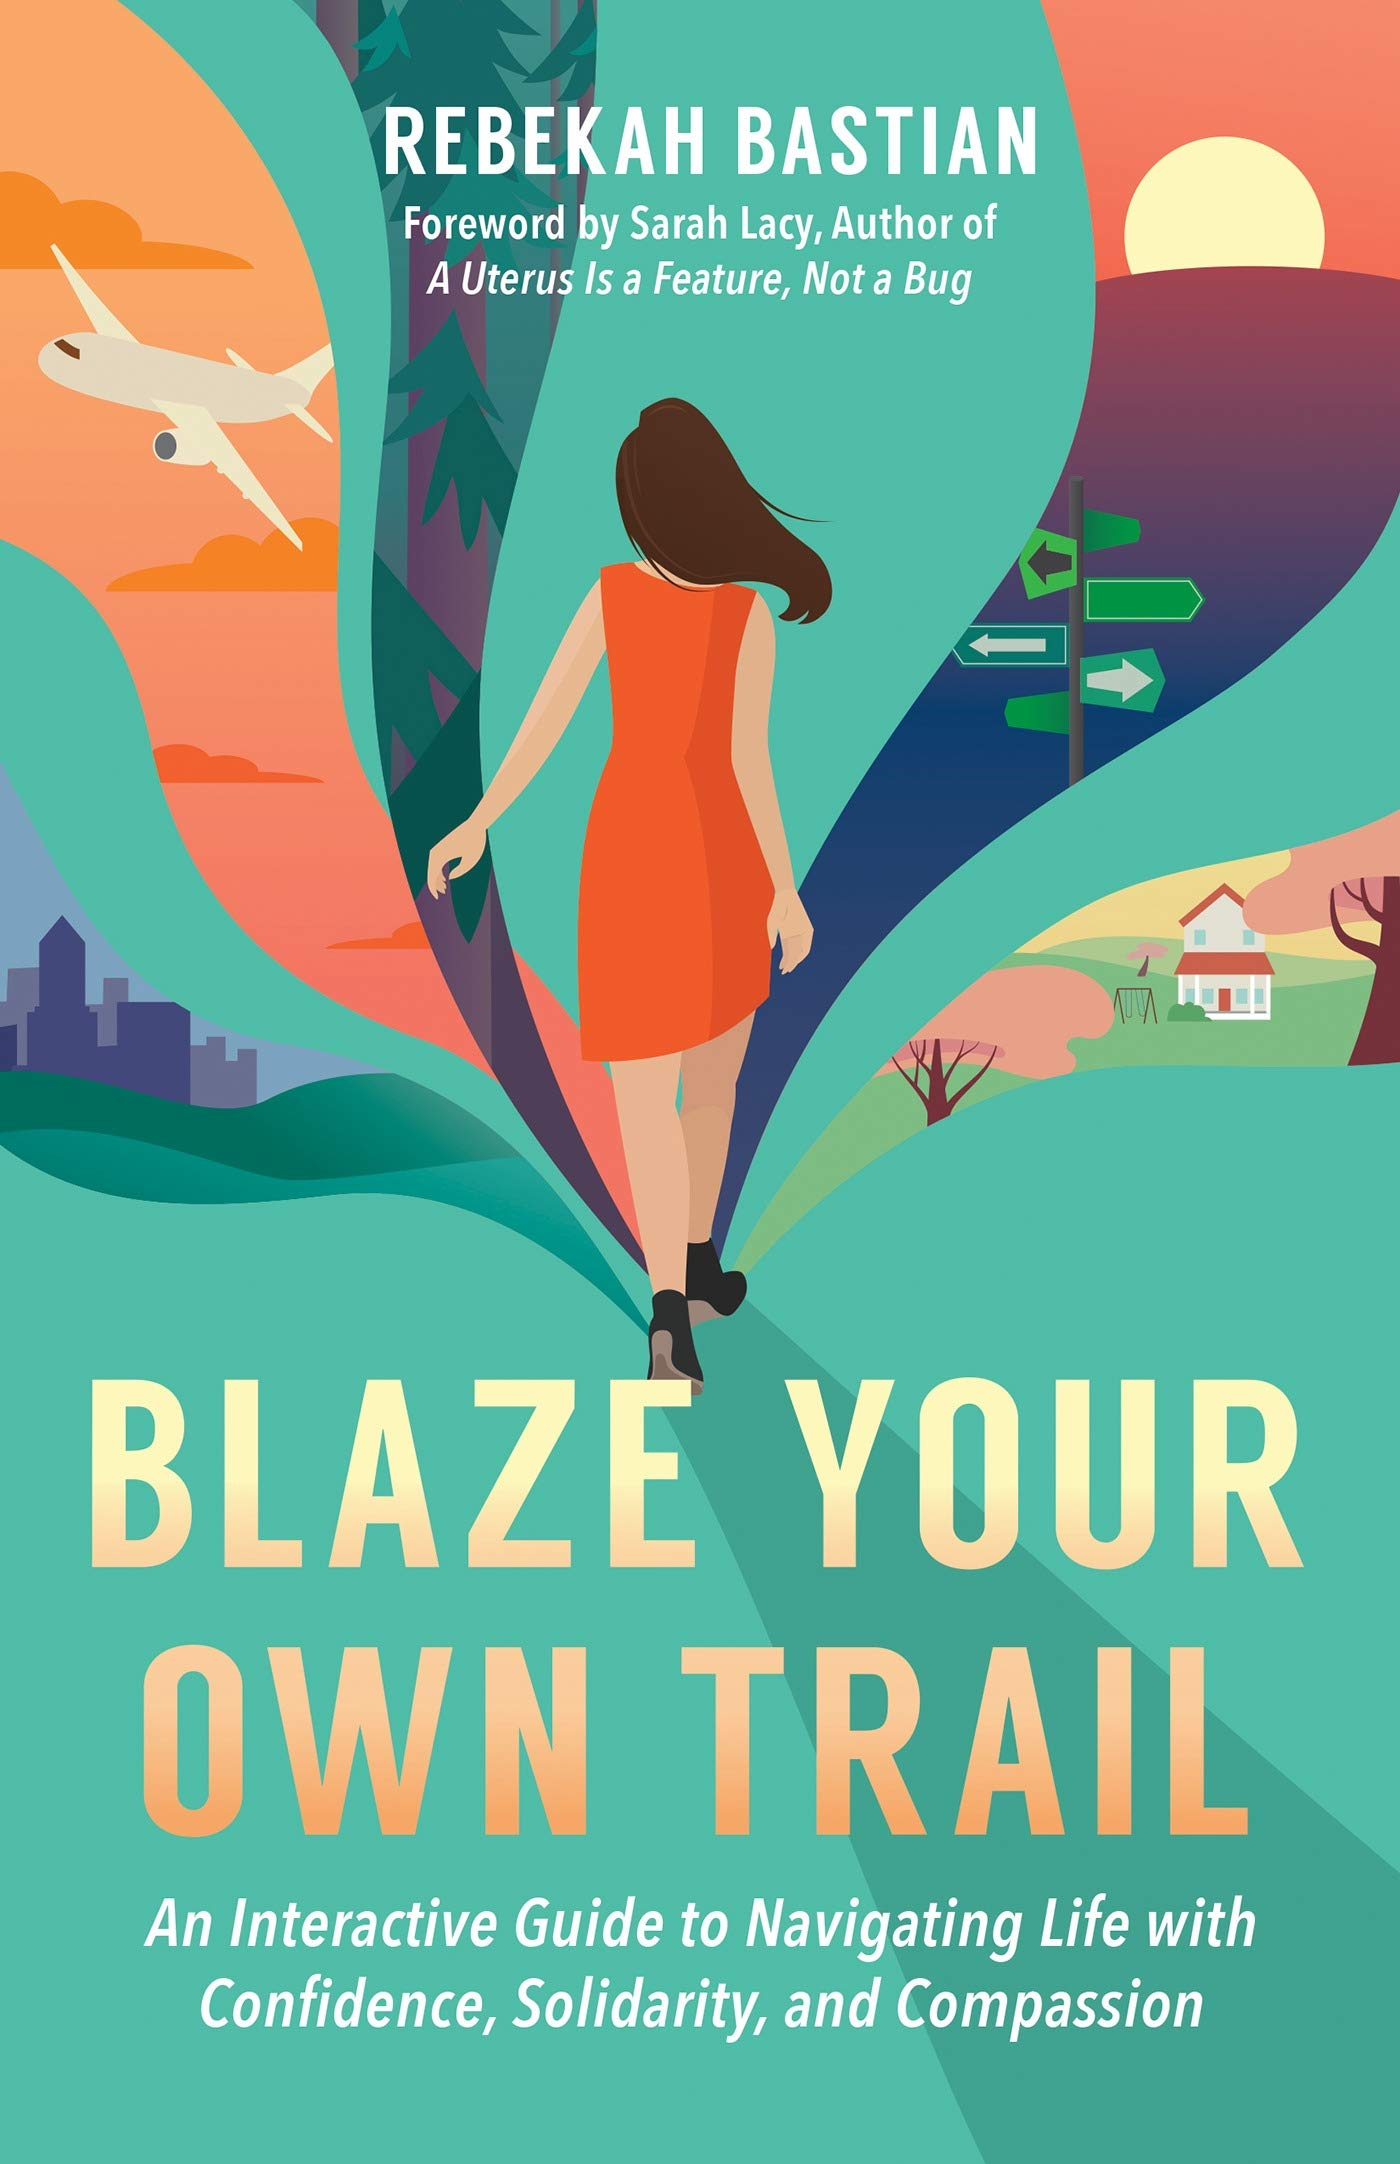 Blaze Your Own Trail An Interactive Guide to Navigating Life with Confidence, Solidarity and Compass